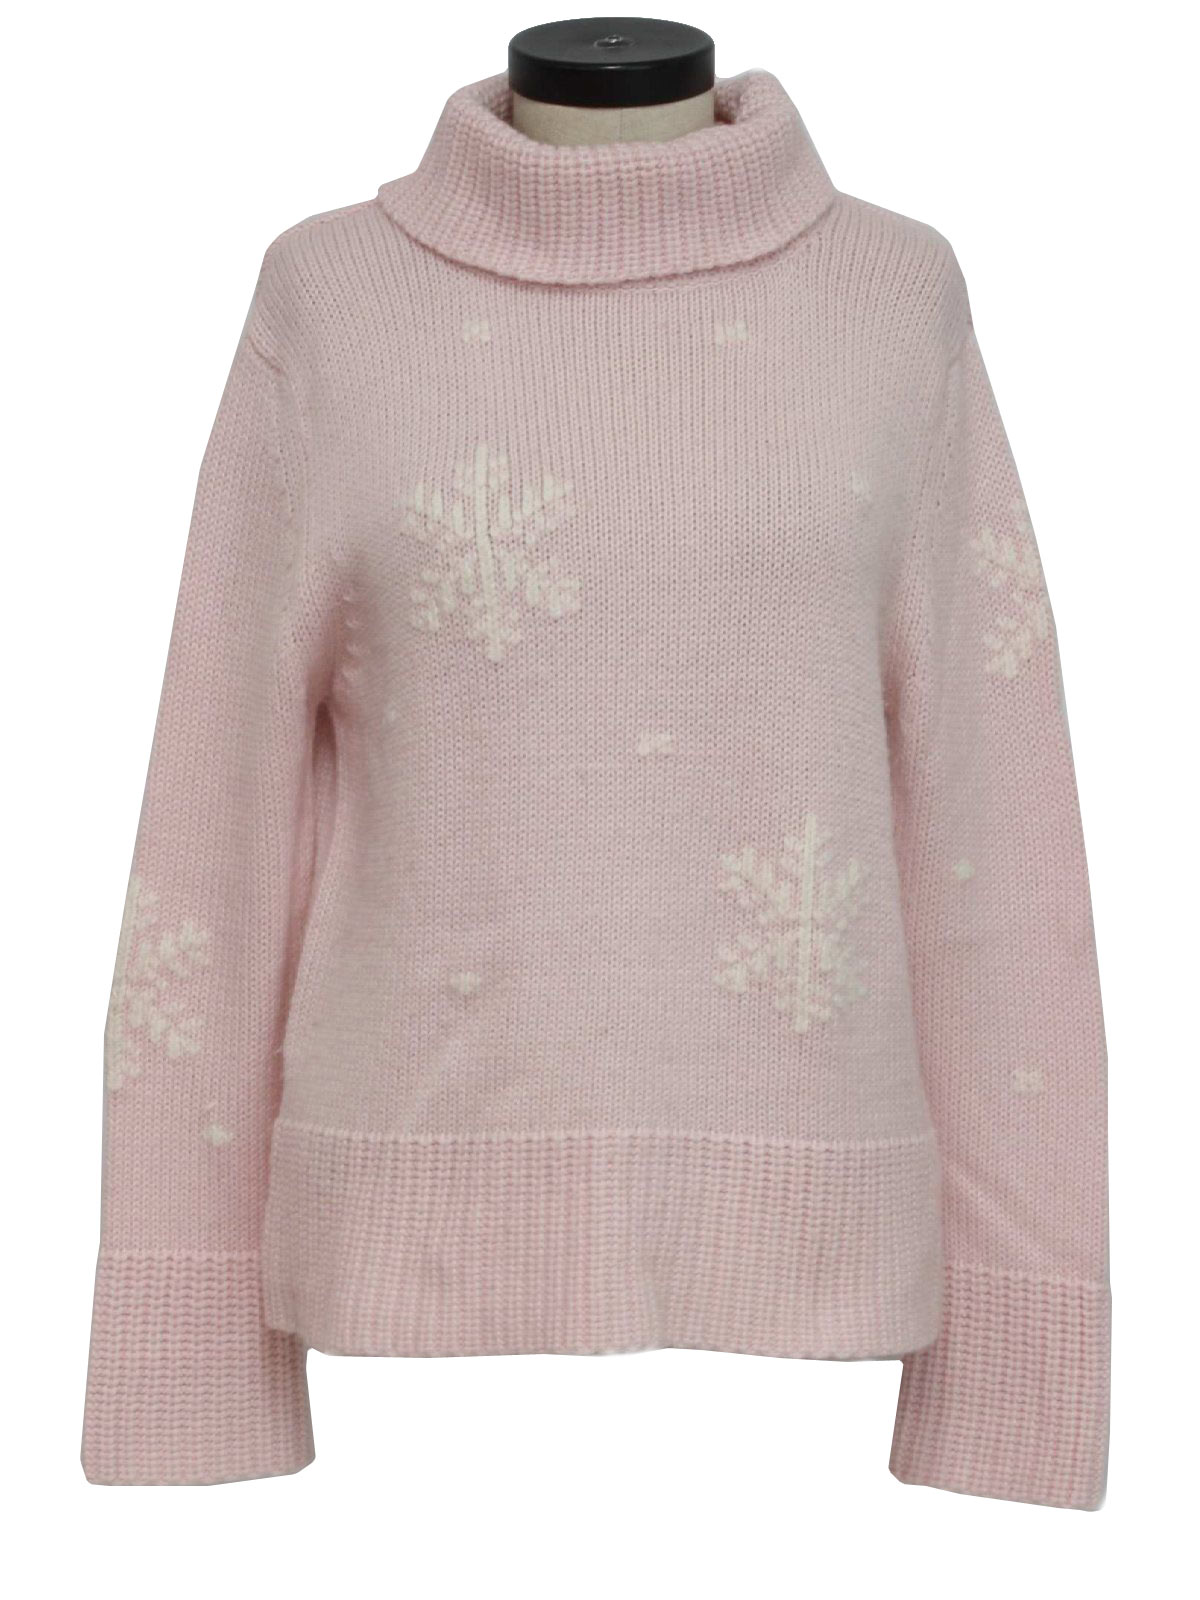 womens minimalist ugly christmas sweater apart impressions womens pink and white acrylic and wool longsleeve pullover folding turtleneck ugly christmas - Pink Ugly Christmas Sweater